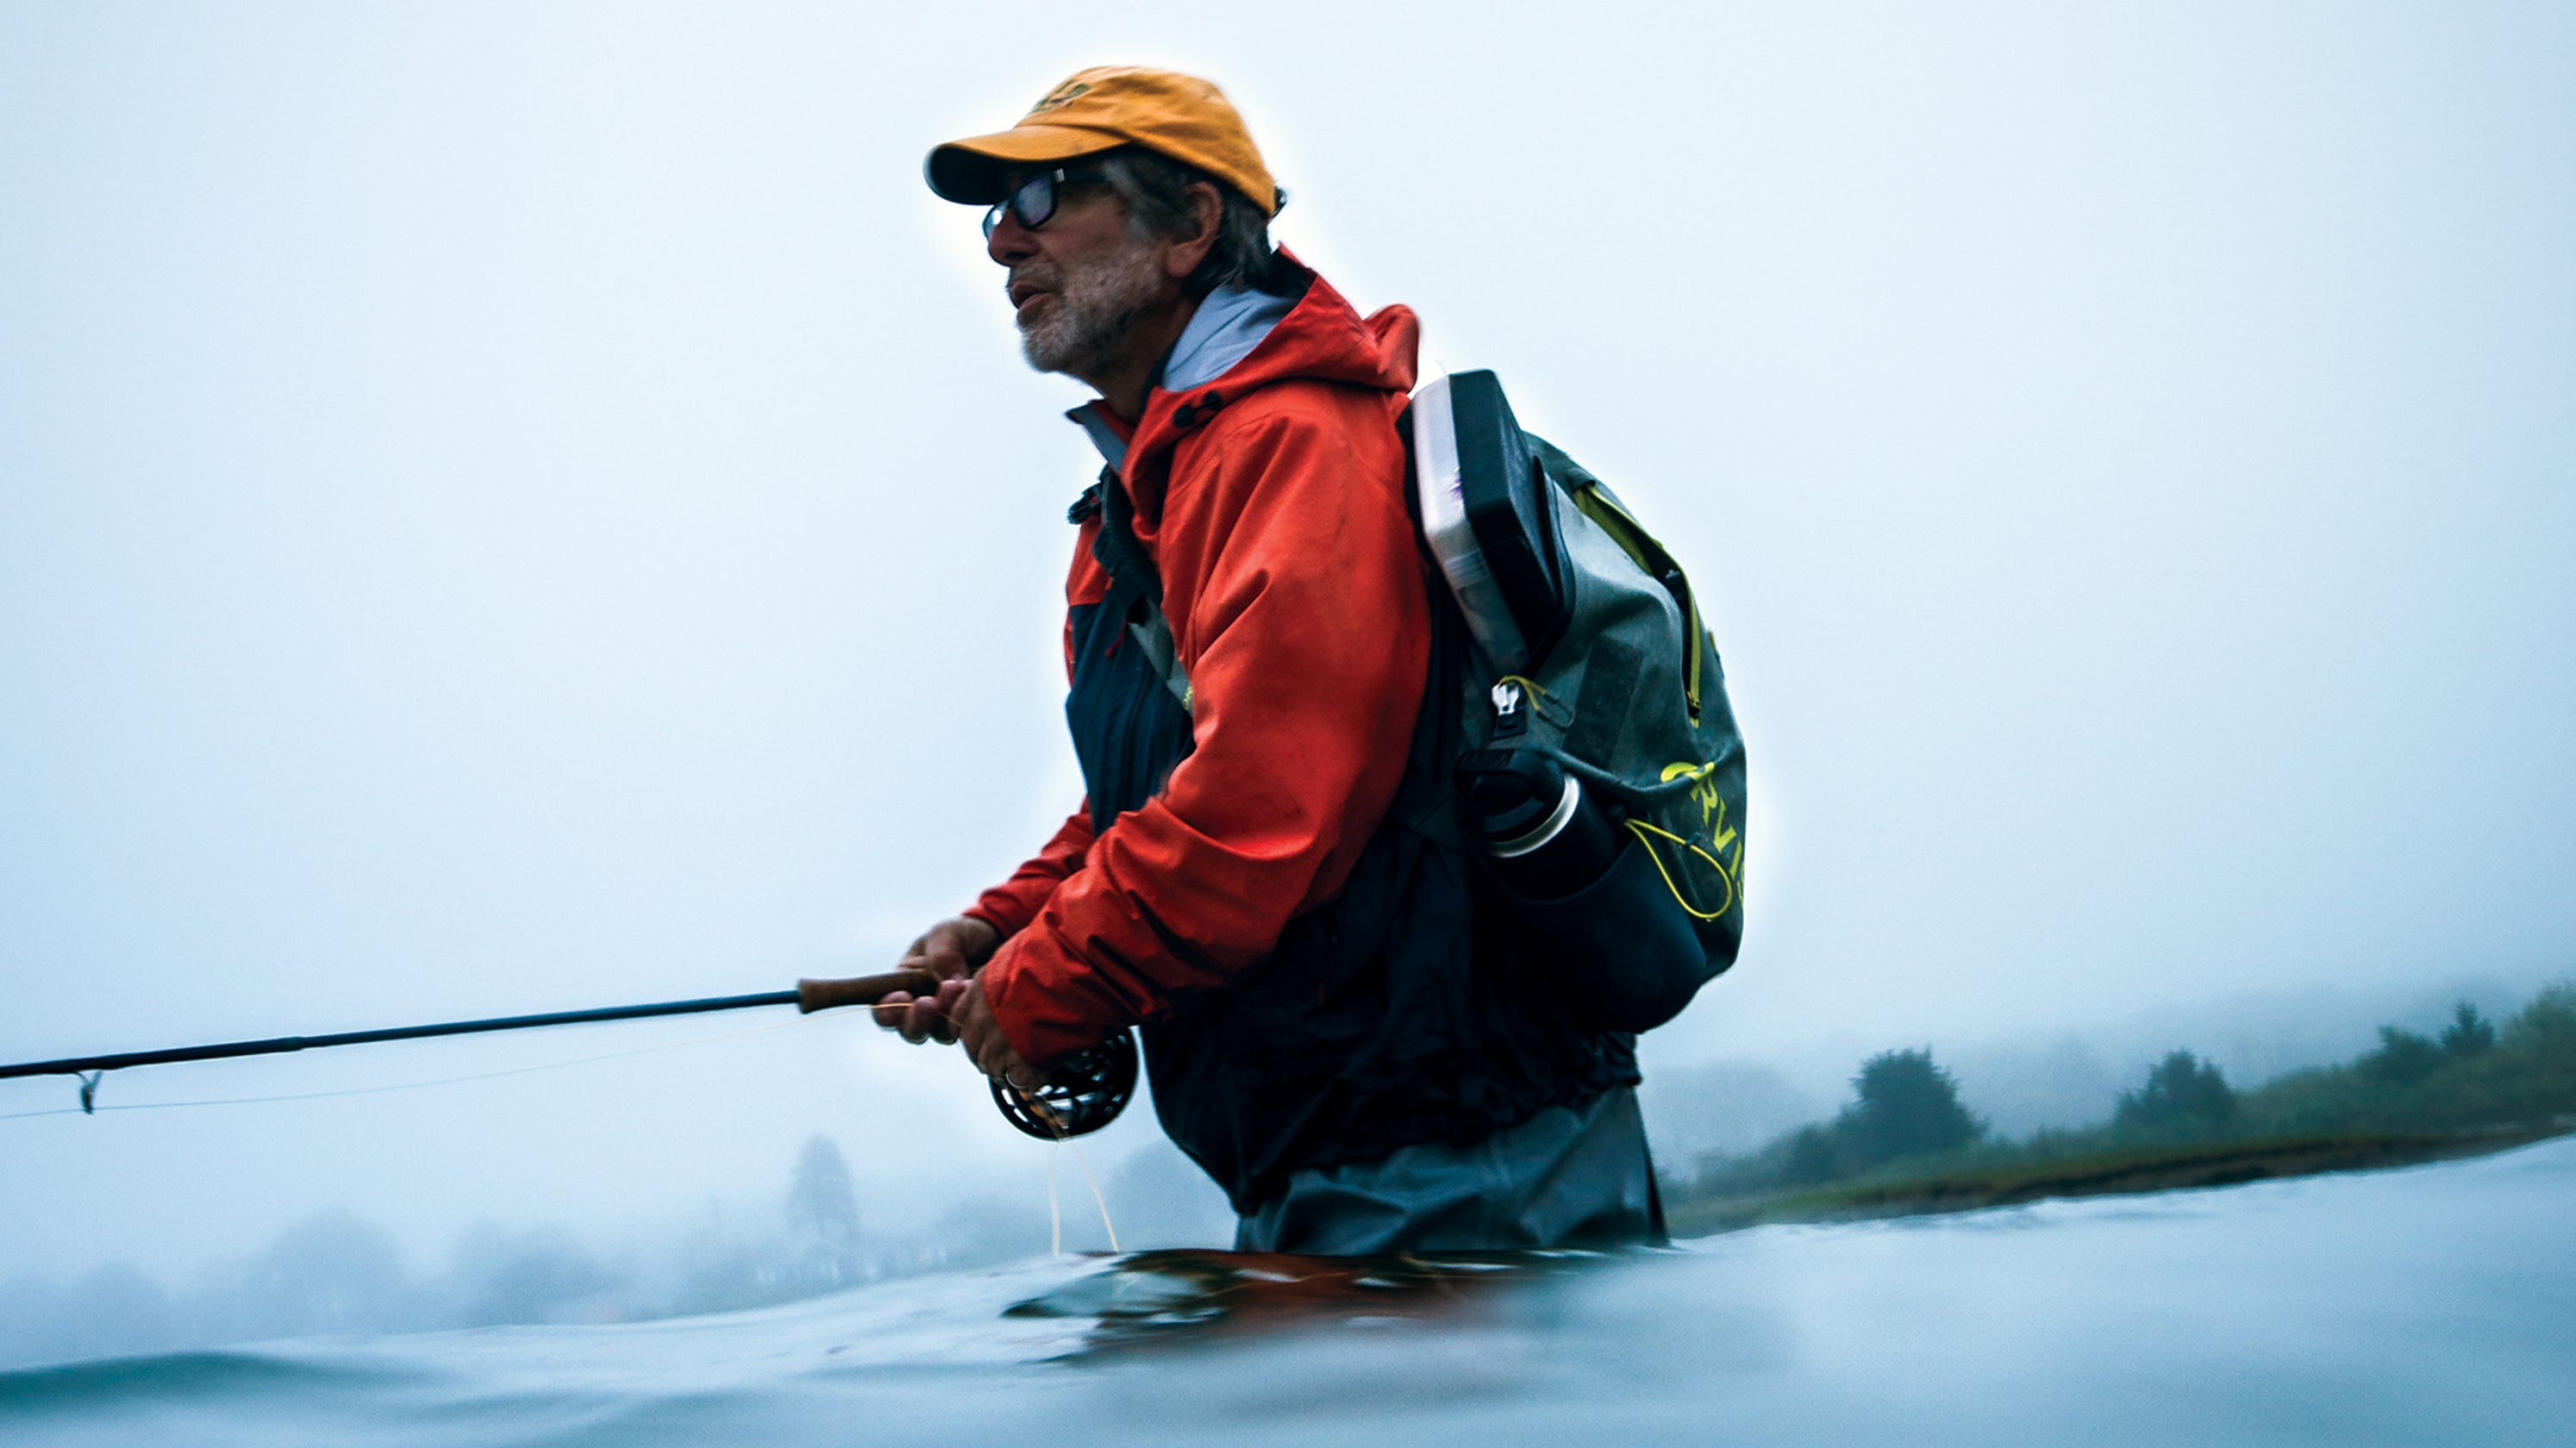 Bass fishing with a fly rod? Don't knock it until you've